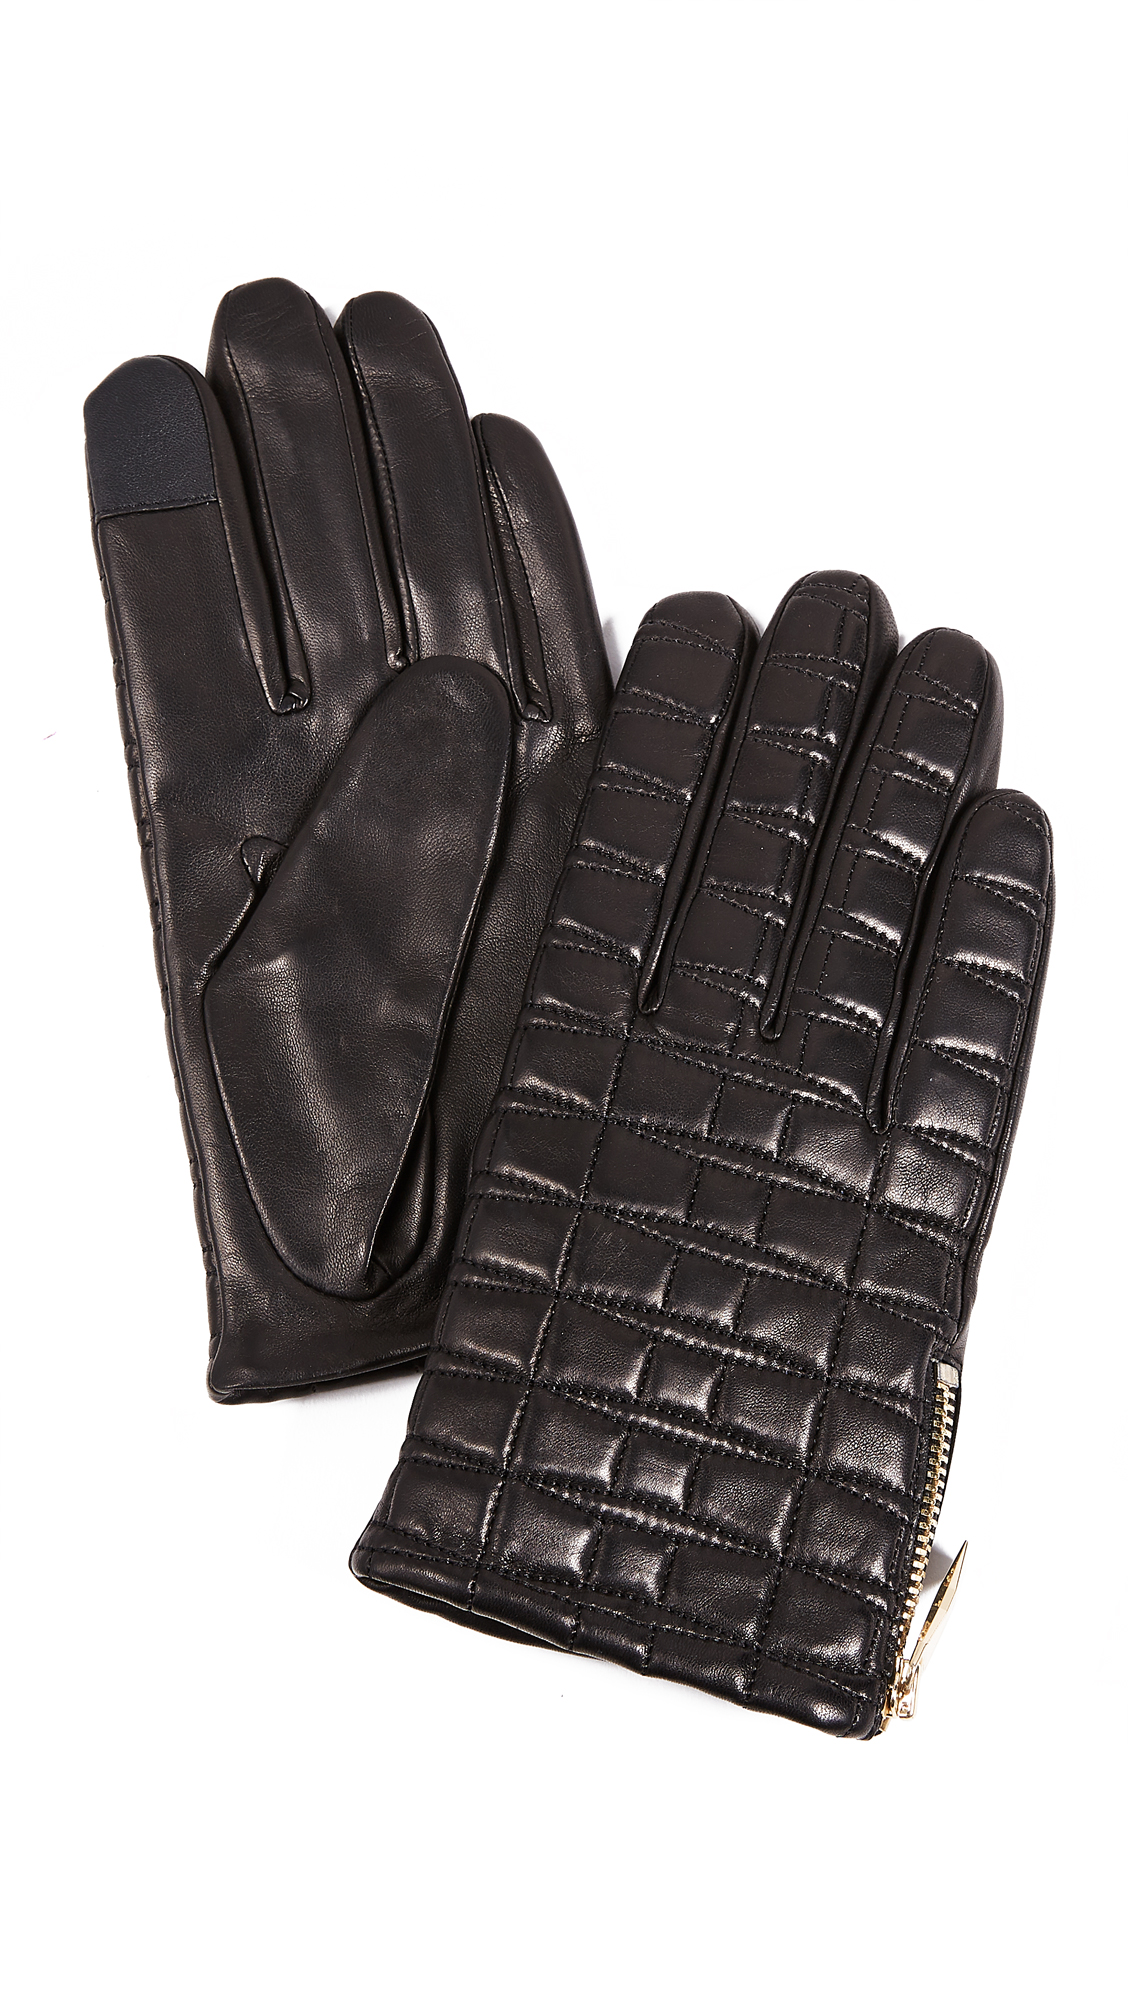 Kate Spade New York Bow Quilted Tech Gloves - Black